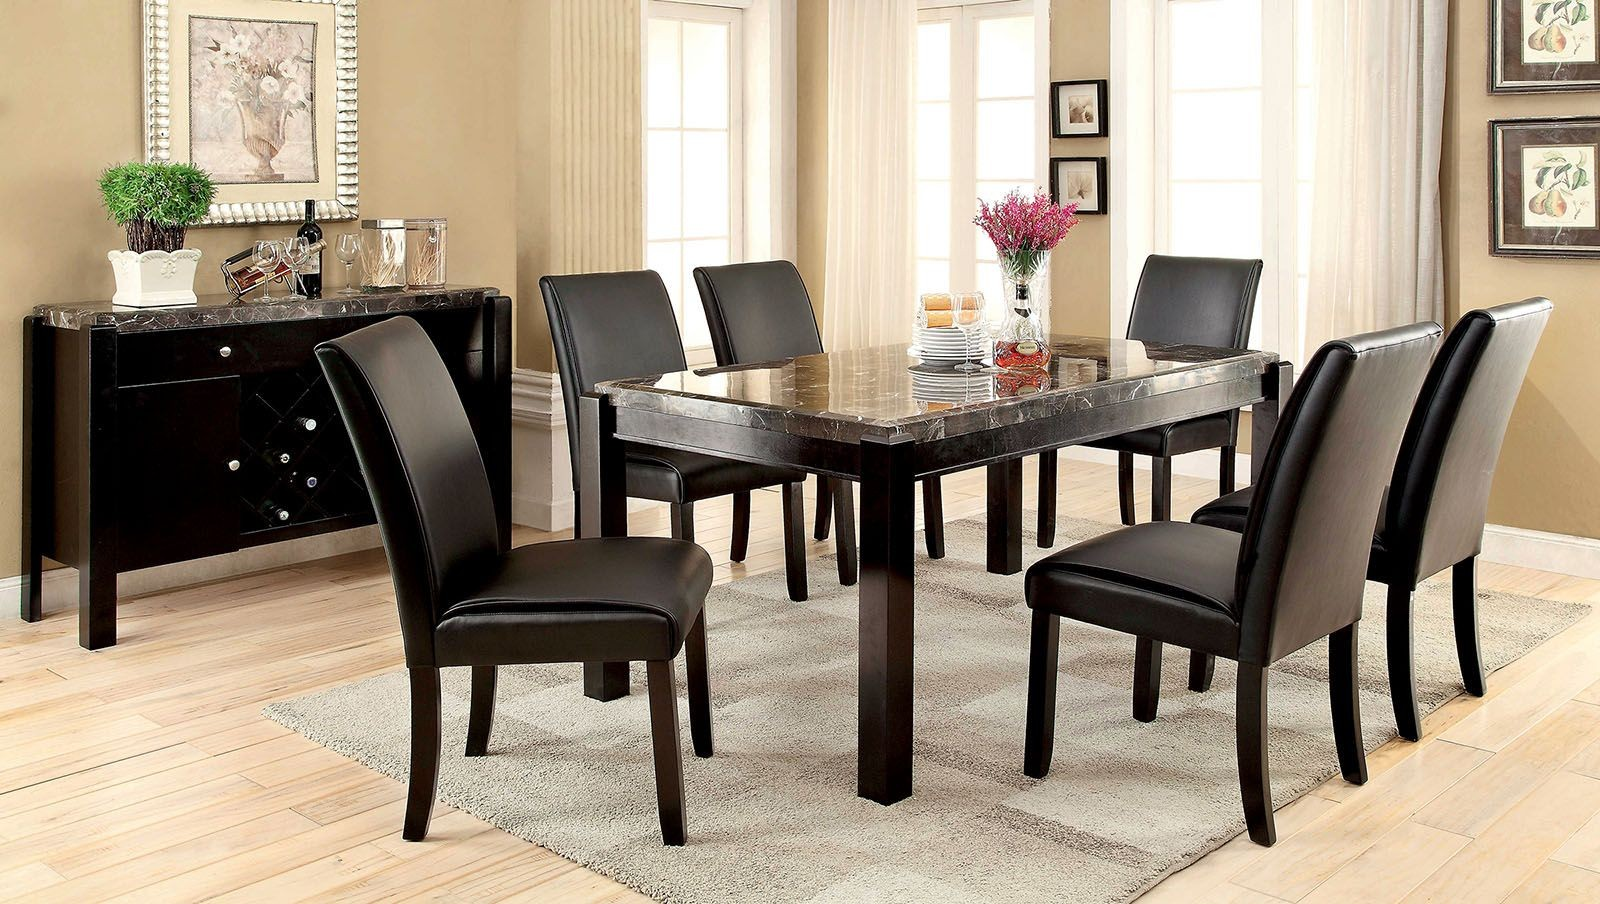 gladstone i gray marble top dining room set cm3823bk t